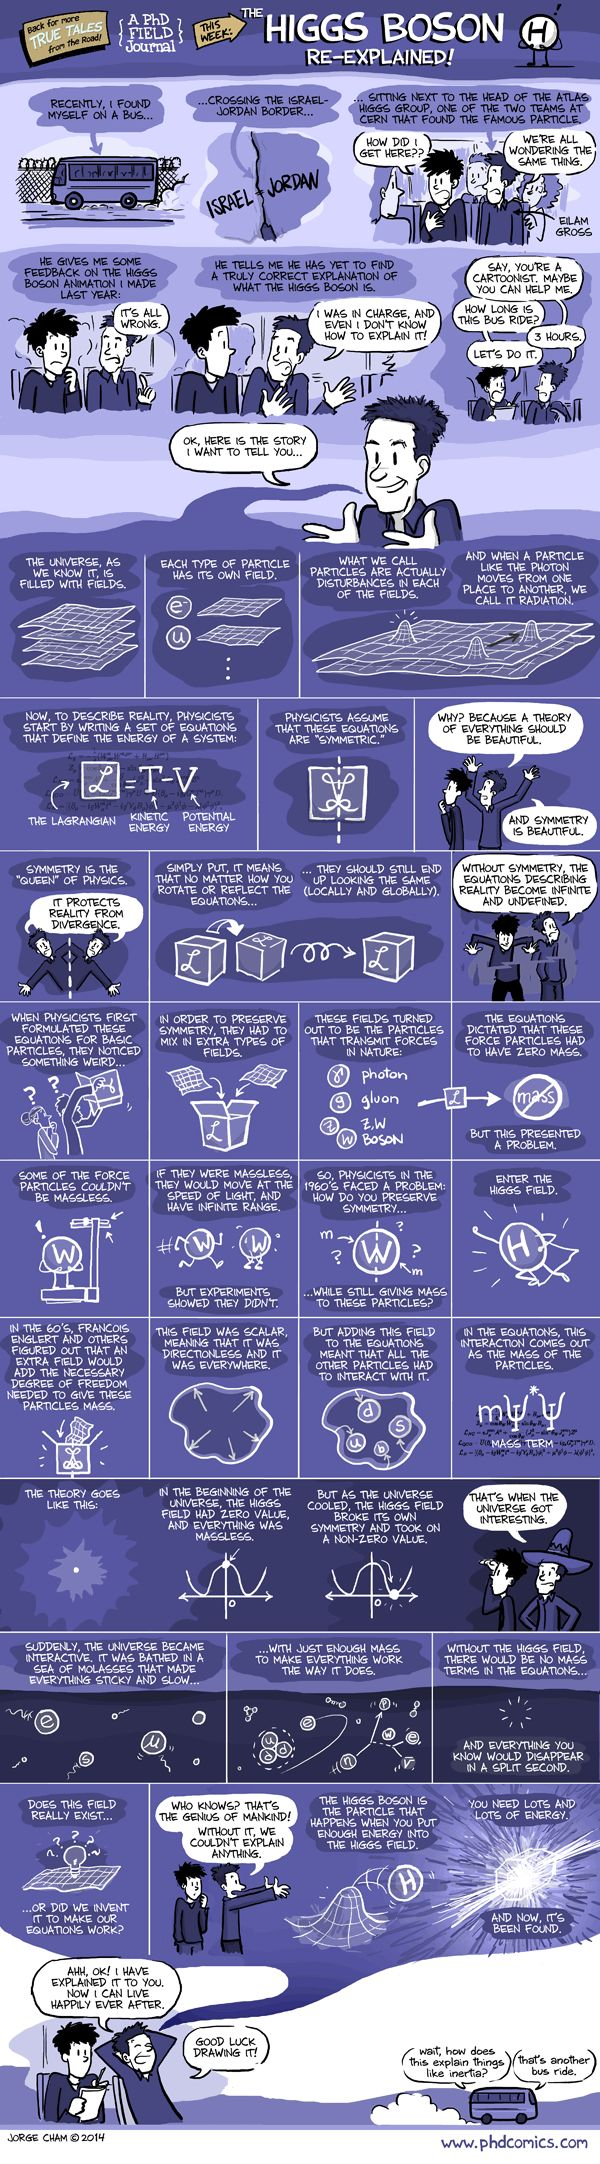 One of the best explanations for the Higgs Bosson. http://www.phdcomics.com/comics/archive/phd021914s.gif